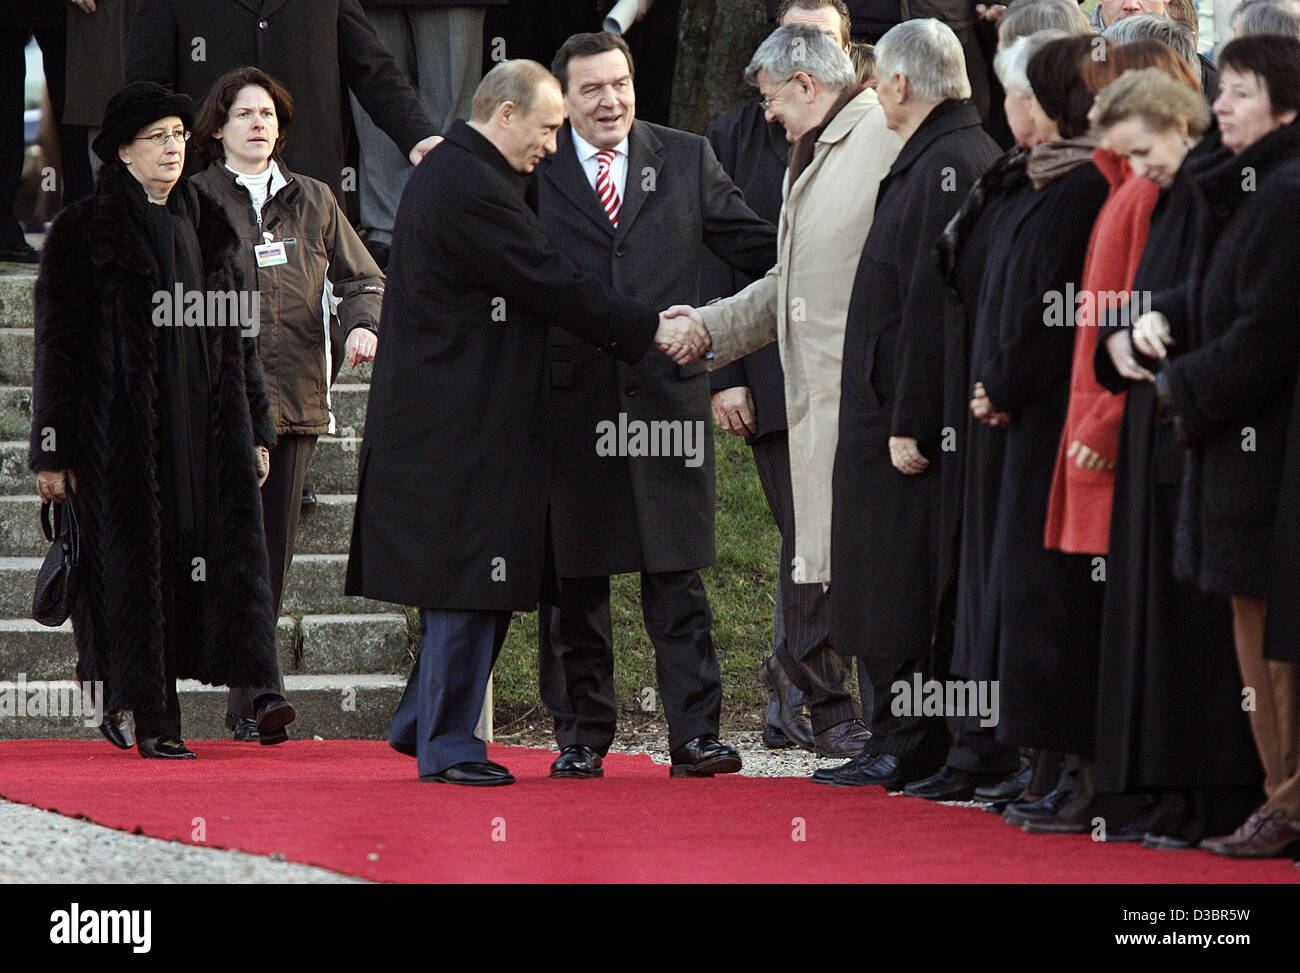 (dpa) - German Chancellor Gerhard Schroeder (C) looks on as Russian President Vladimir Putin (L) shakes hands with - Stock Image